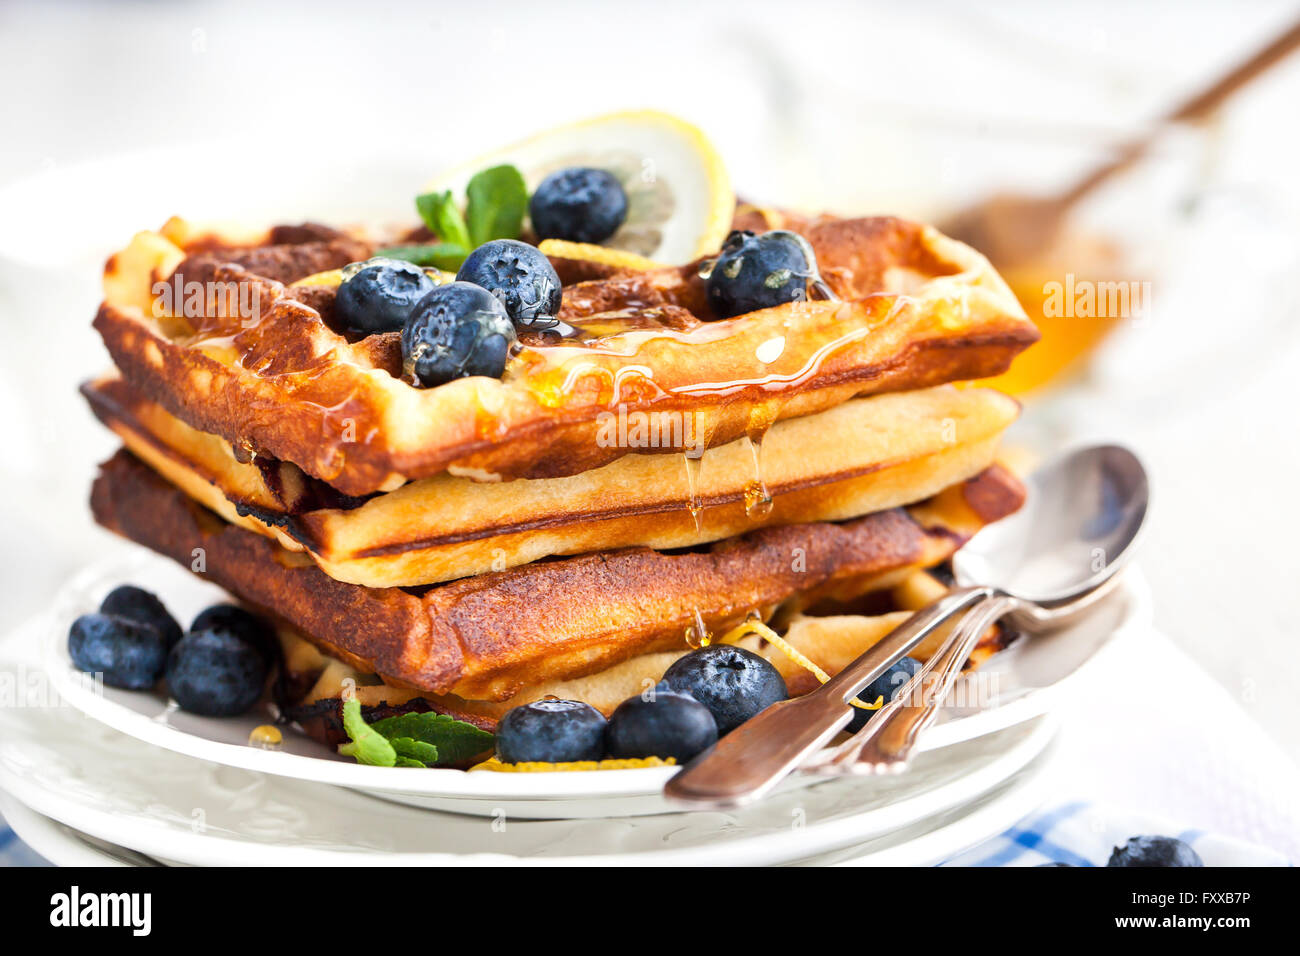 Lemon blueberry waffles with honey, zest, fresh berries and cup of tea - Stock Image